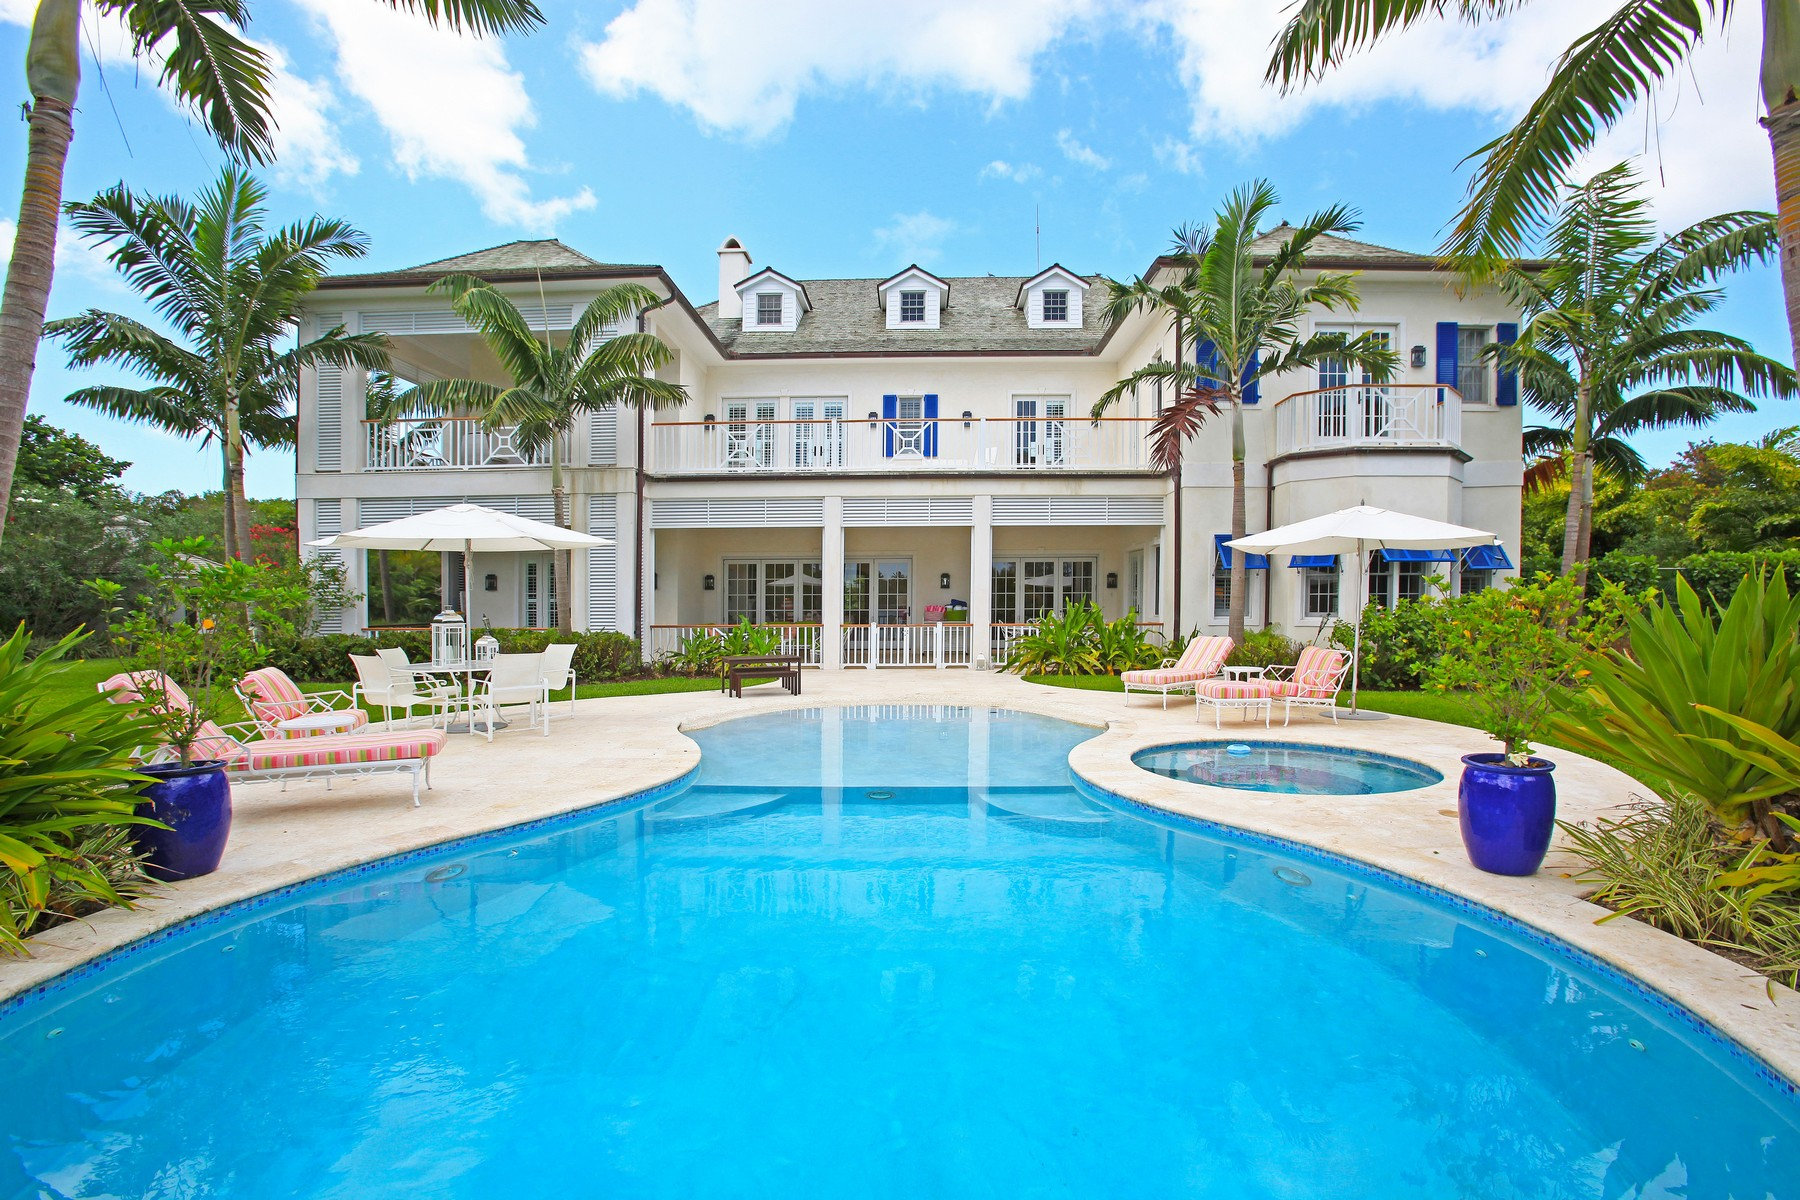 Single Family Home for Sale at The Cuckoo's Nest Lyford Cay, Nassau And Paradise Island Bahamas